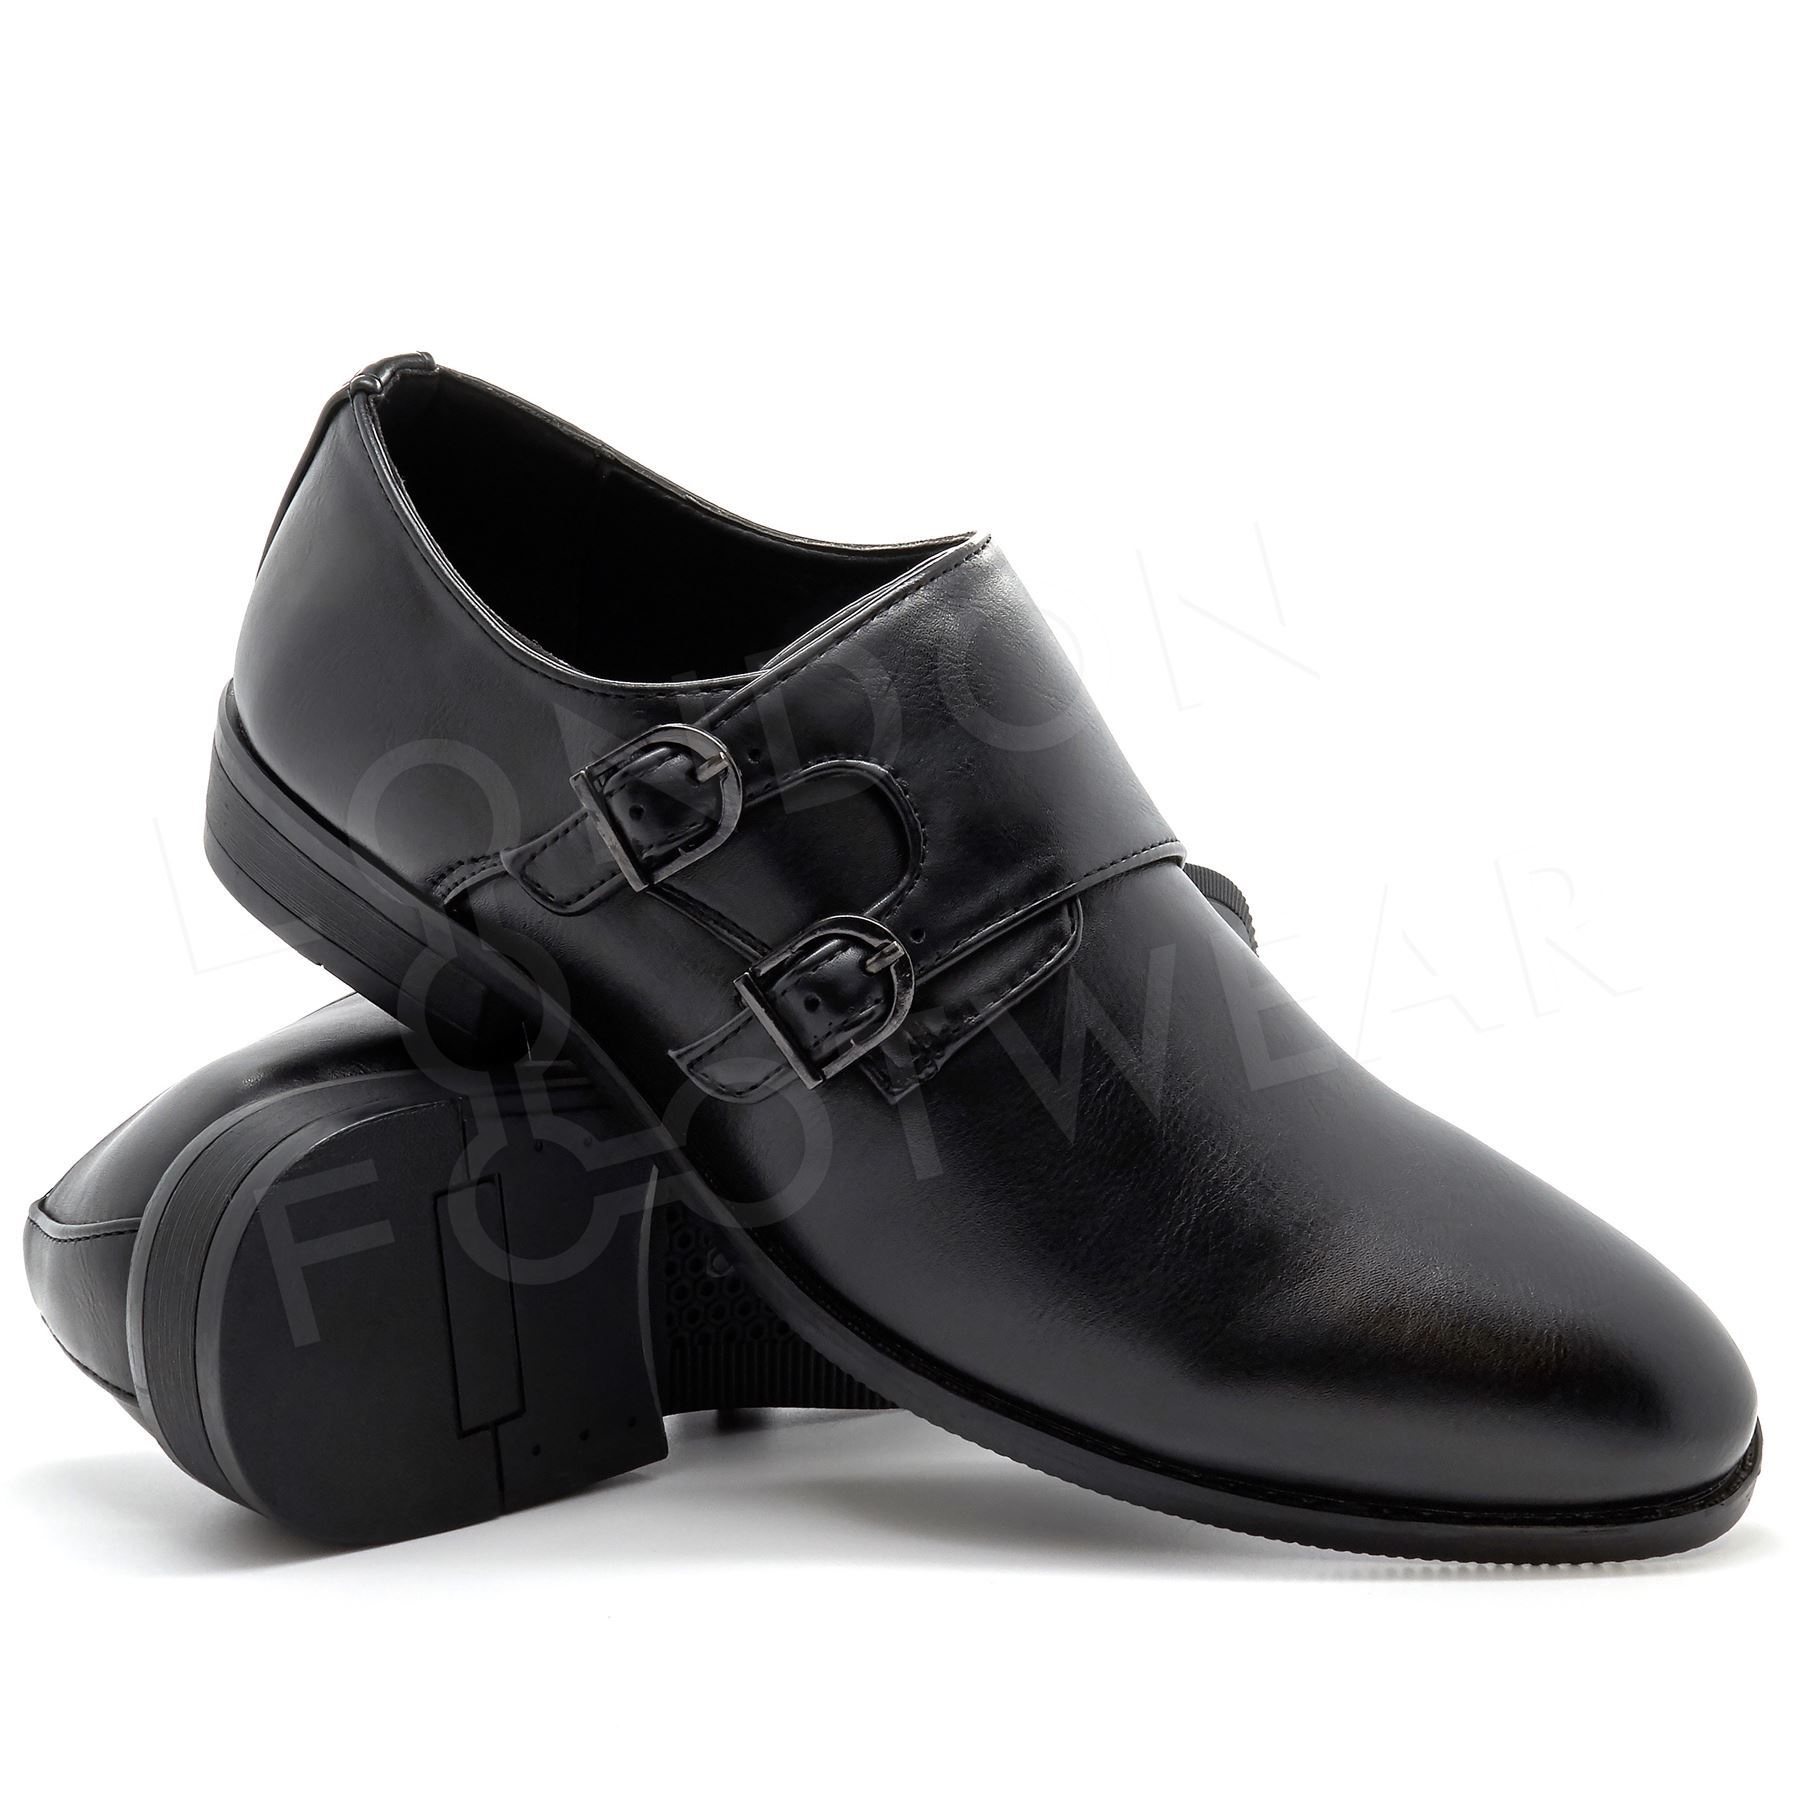 New Mens Italian Smart Formal Party Size Work Casual Dress Office Wedding Shoes | EBay